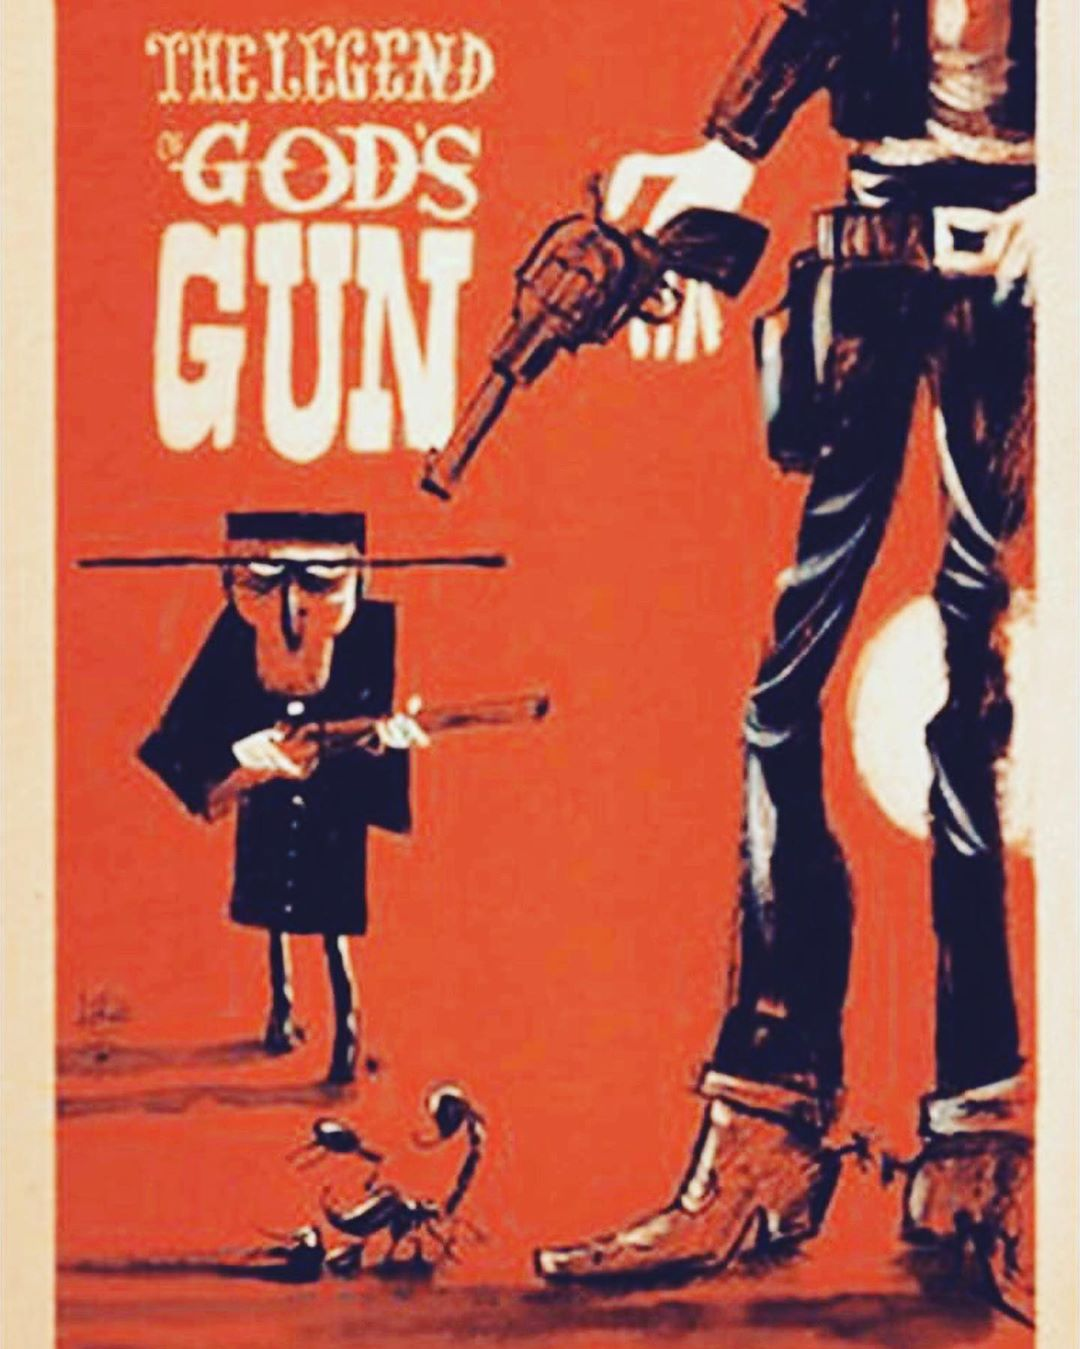 Wondering who did this poster? #thelegendofgodsgun #spindrift @rio_daddy @california_drifter @spindriftwest #spaghettiwesterns @almeriacine @awff_oficial #filmposter #westernfilm @bobby_bones23 @colinambulance @thunderricky